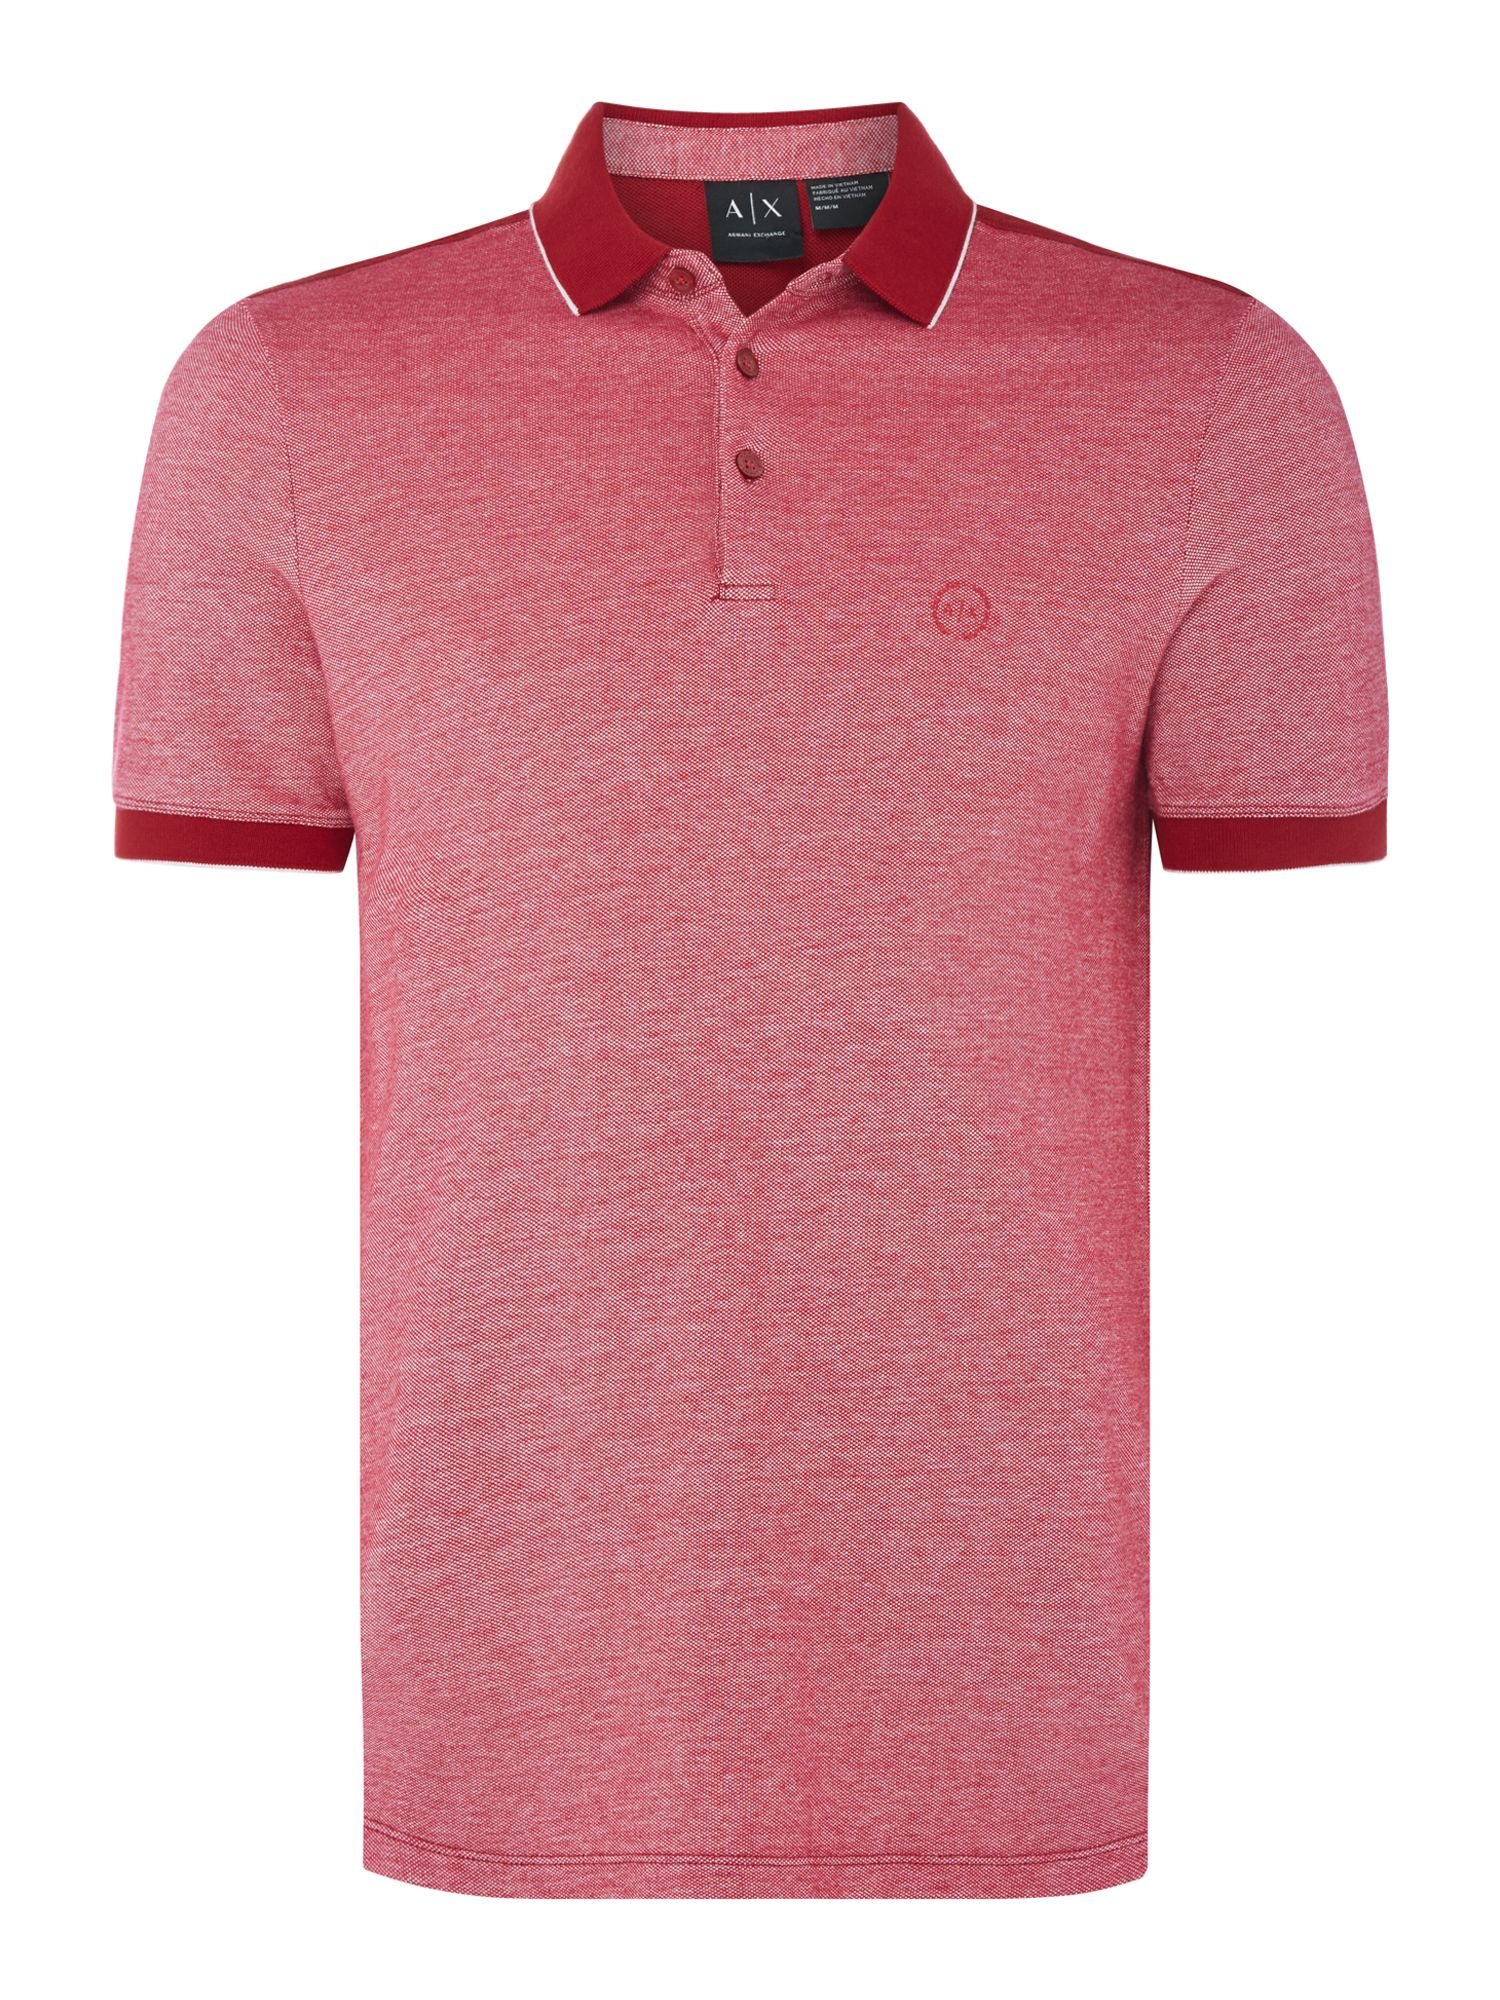 Men's Armani Exchange Contrast Collar Polo, Red